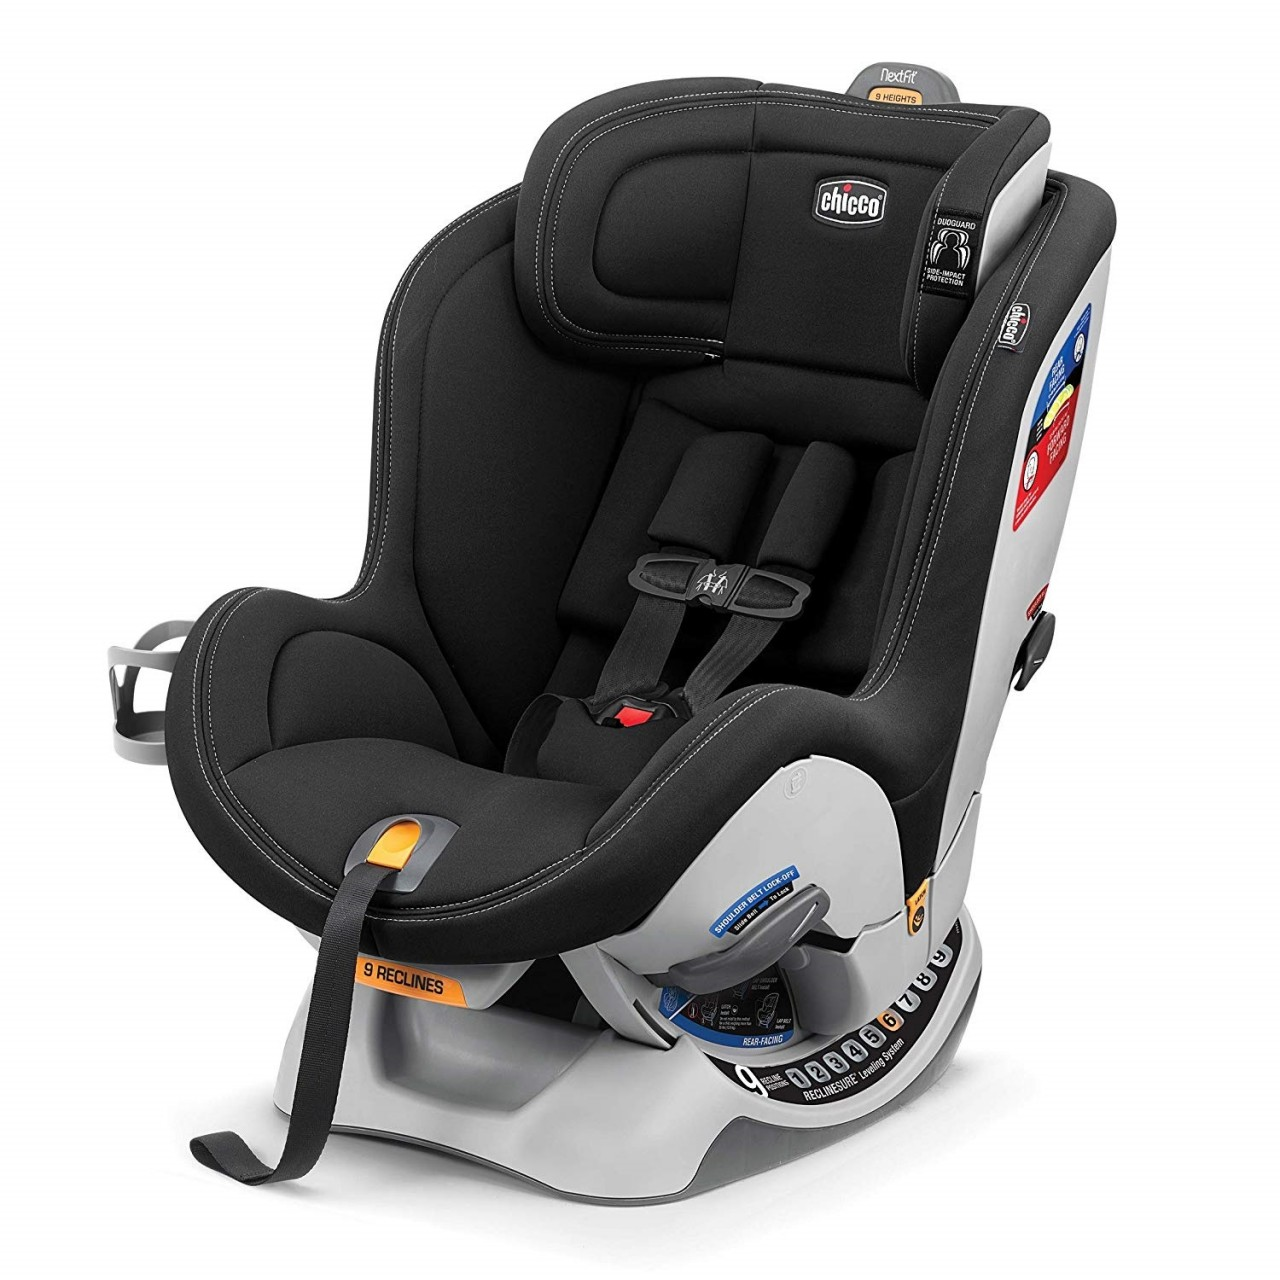 Stage 2 Car Seat With Base Carseatblog The Most Trusted Source For Car Seat Reviews